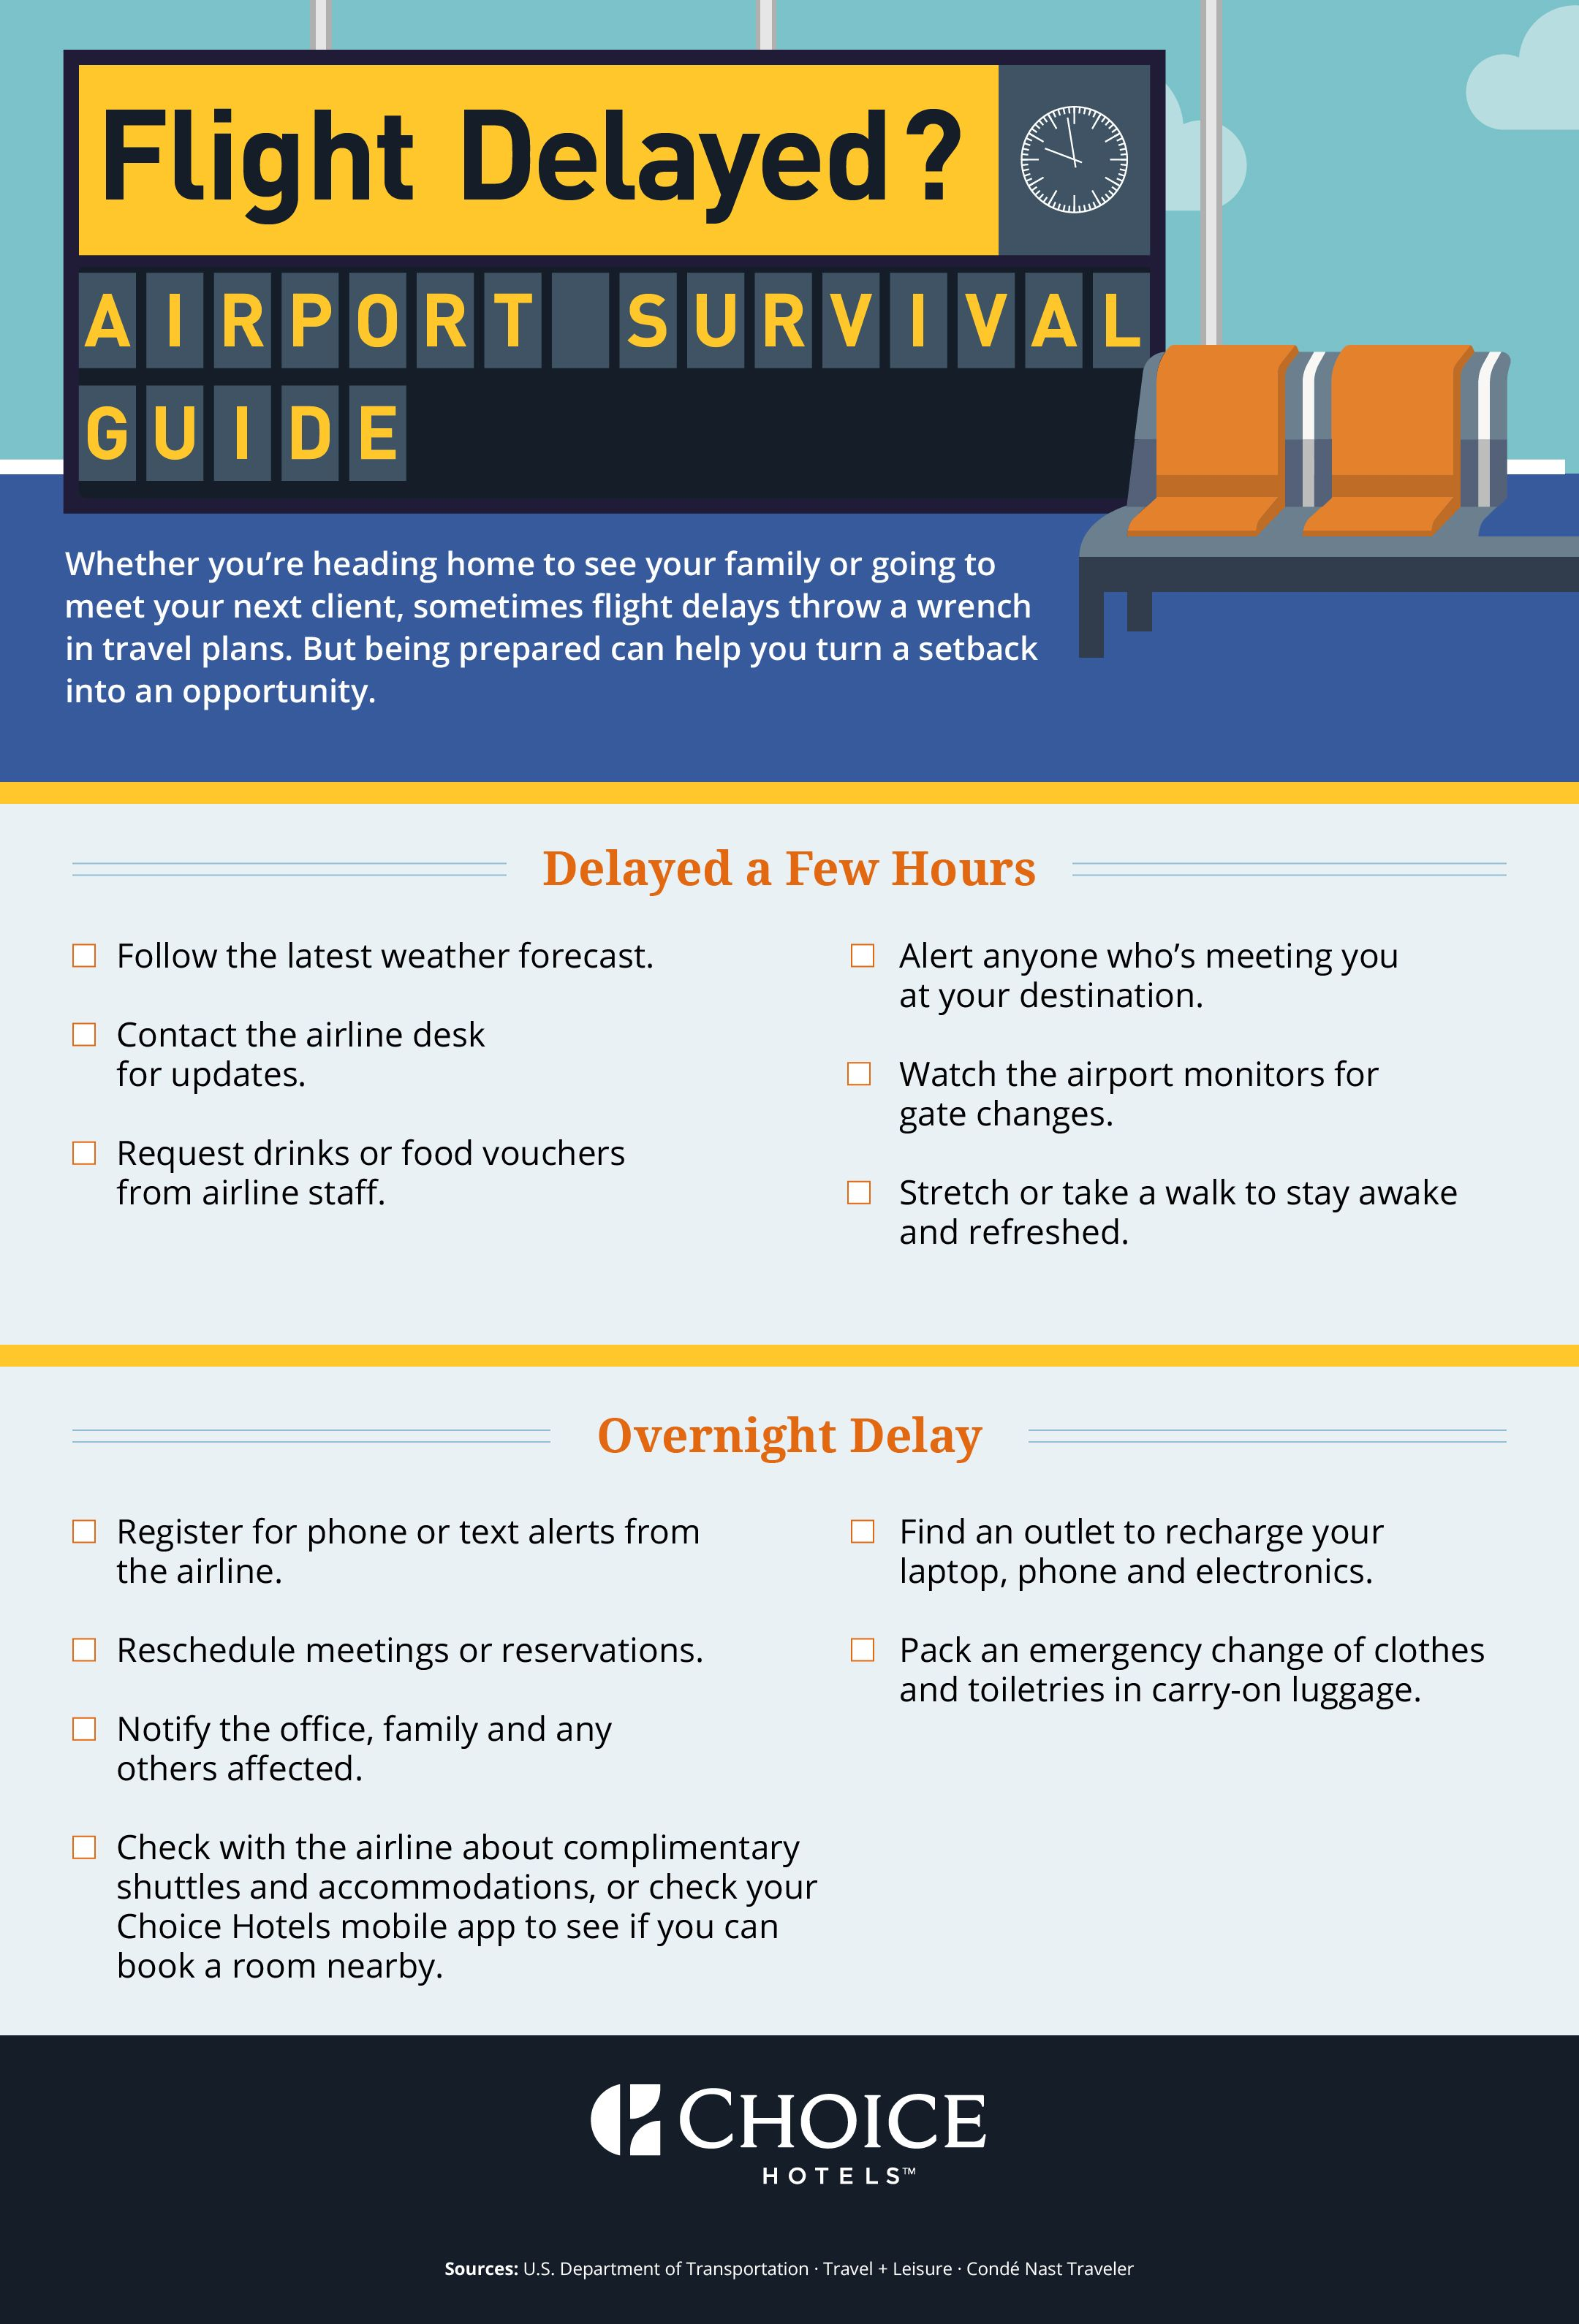 Flight Delayed Airport Survival Guide Travel Tips Business Air Choice Hotelsair